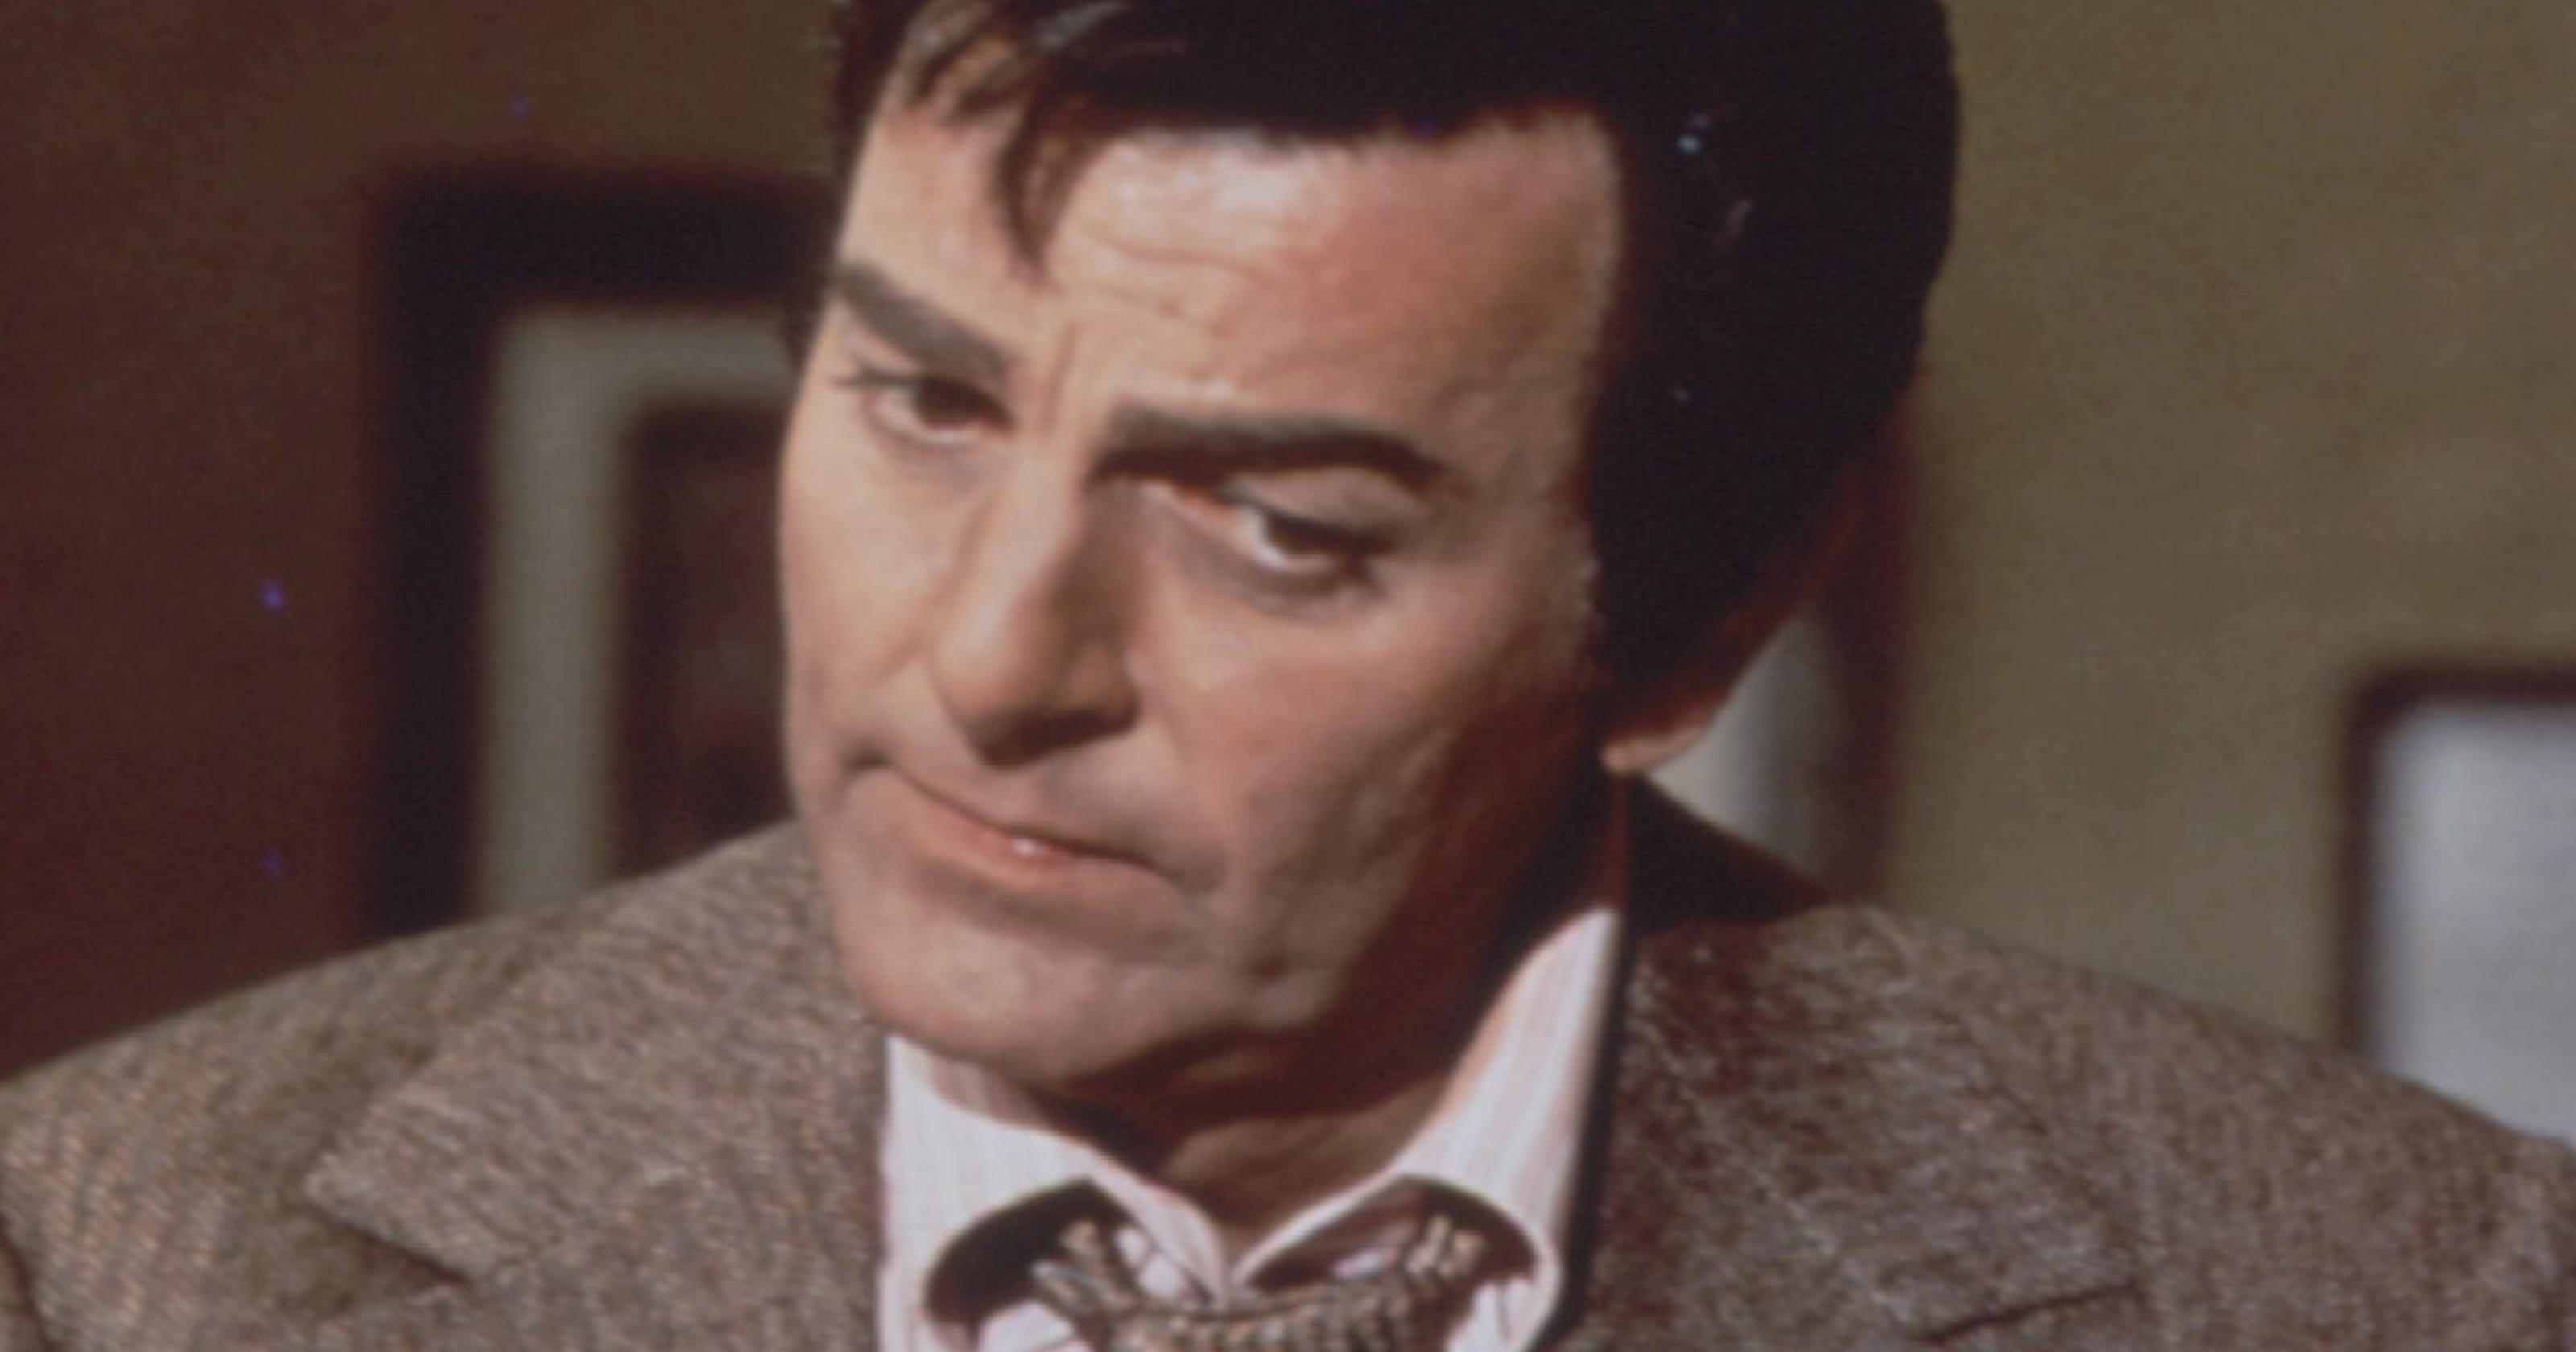 Mike Connors, TV's 'Mannix,' dies at age 91